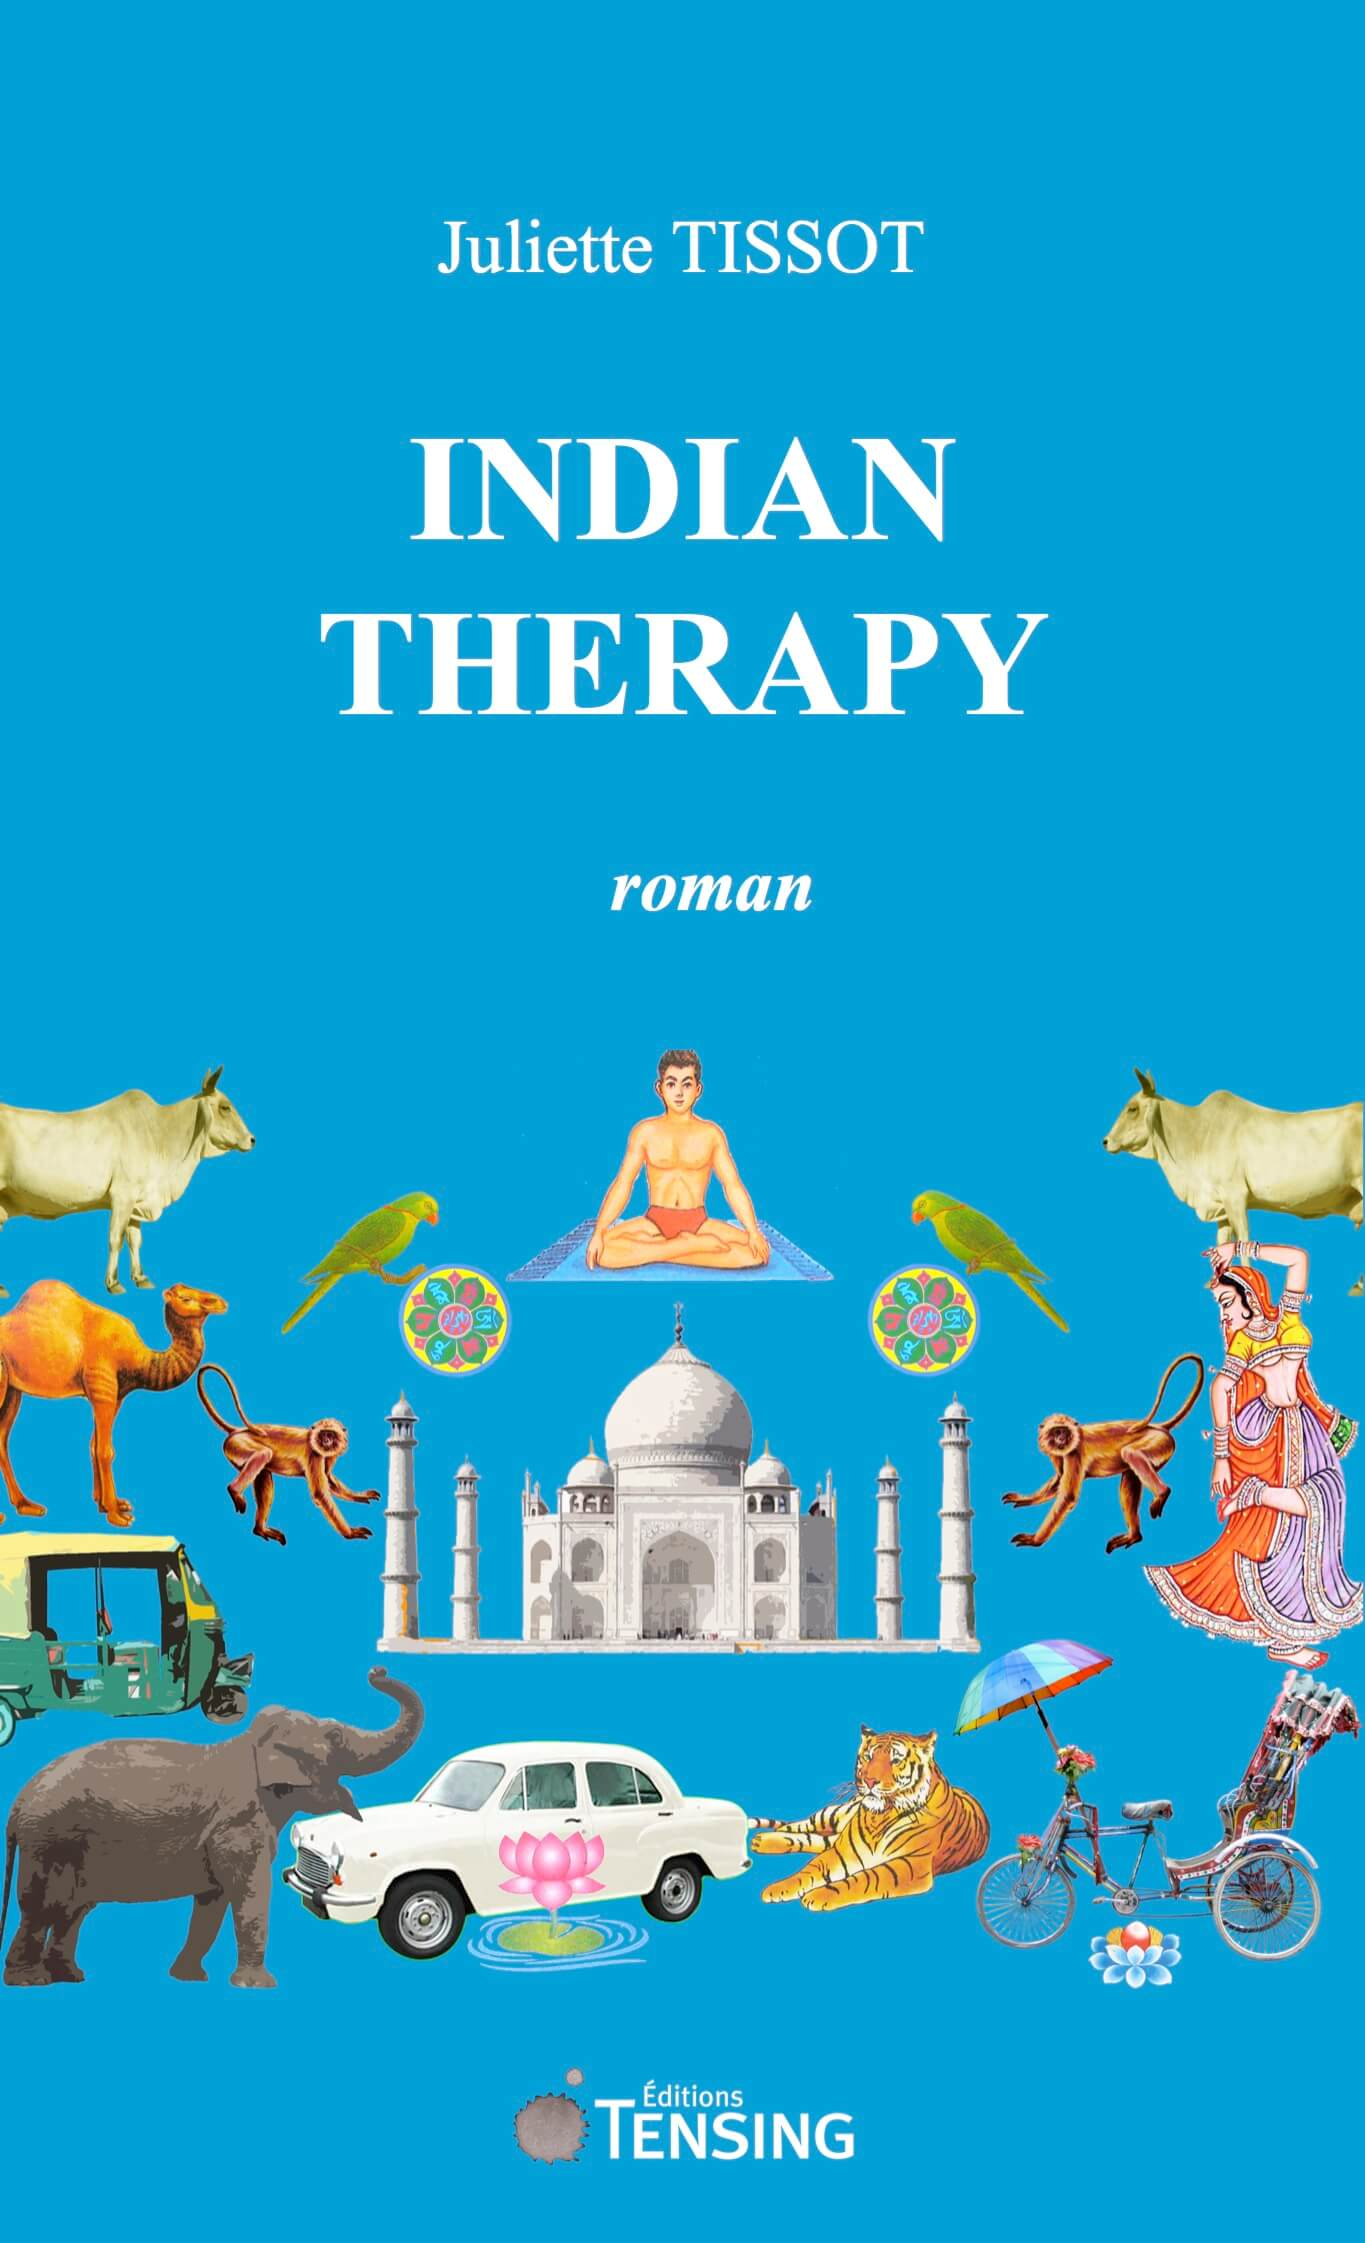 Indian therapy 2015